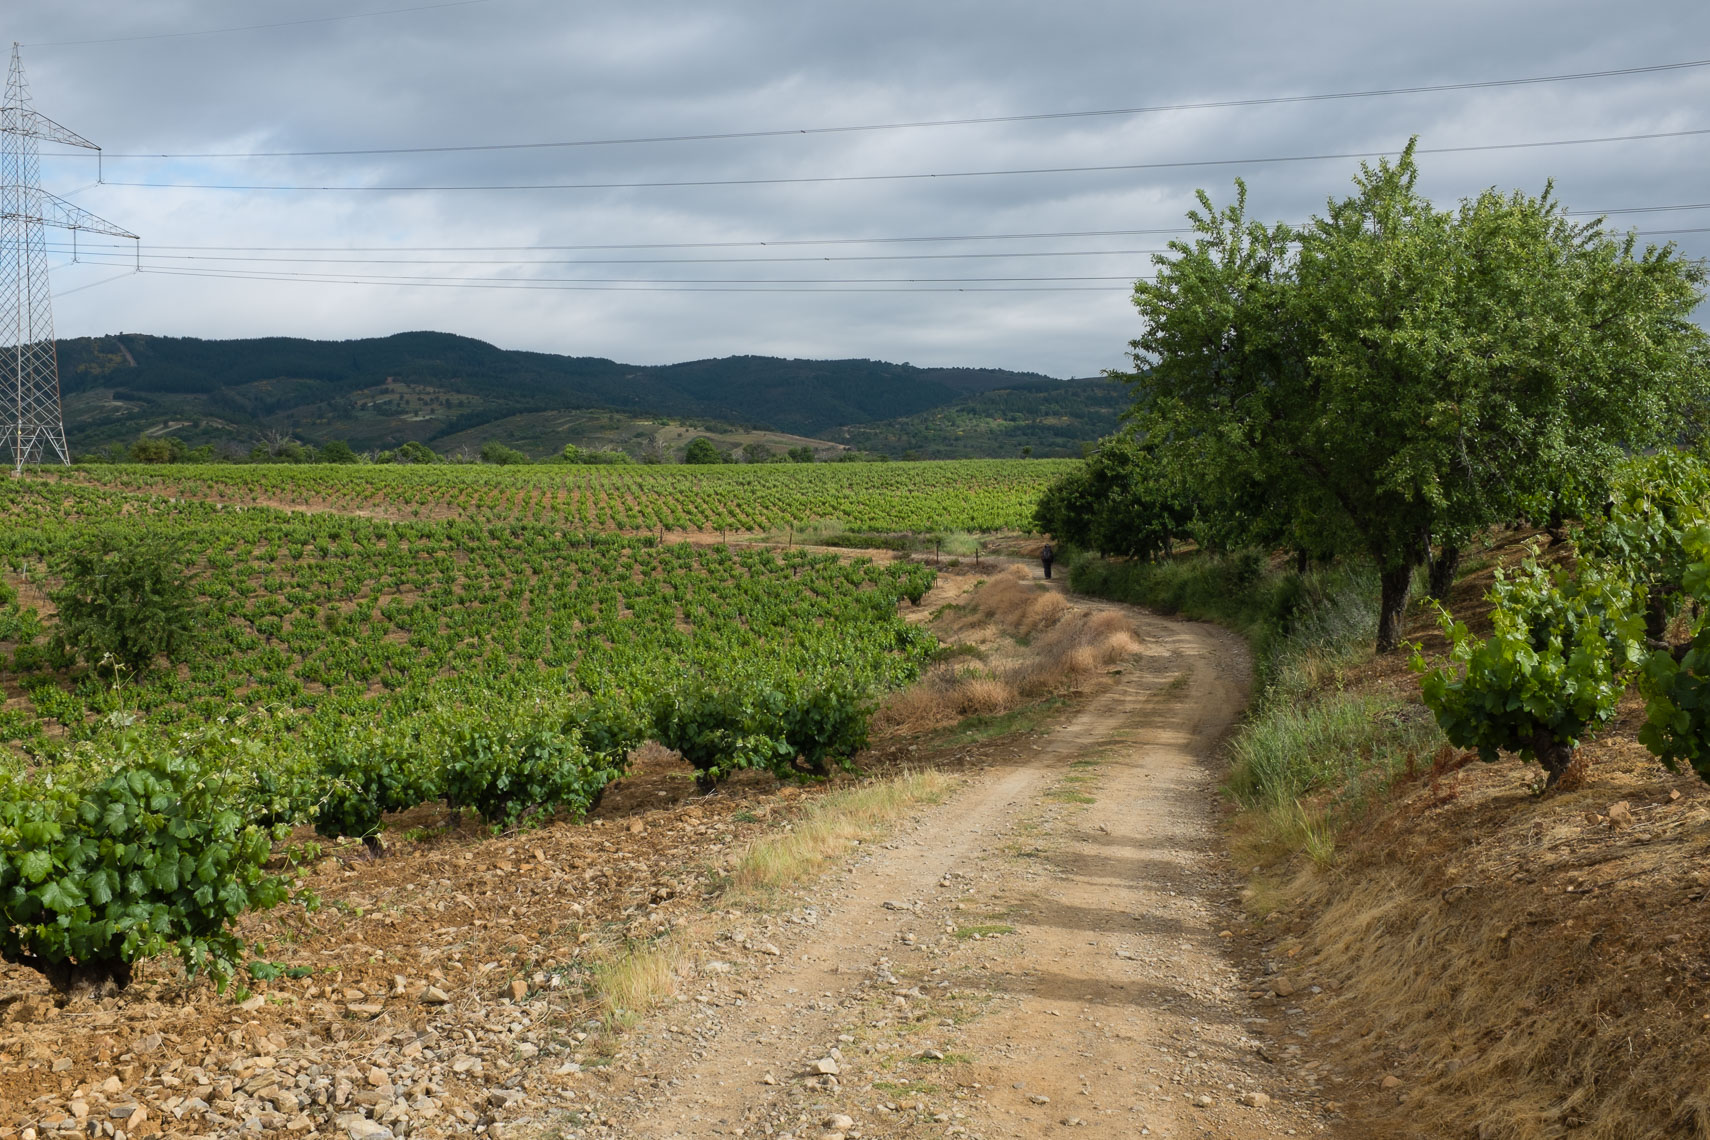 2014-0506-MayJune-TRAVEL-Camino-1242